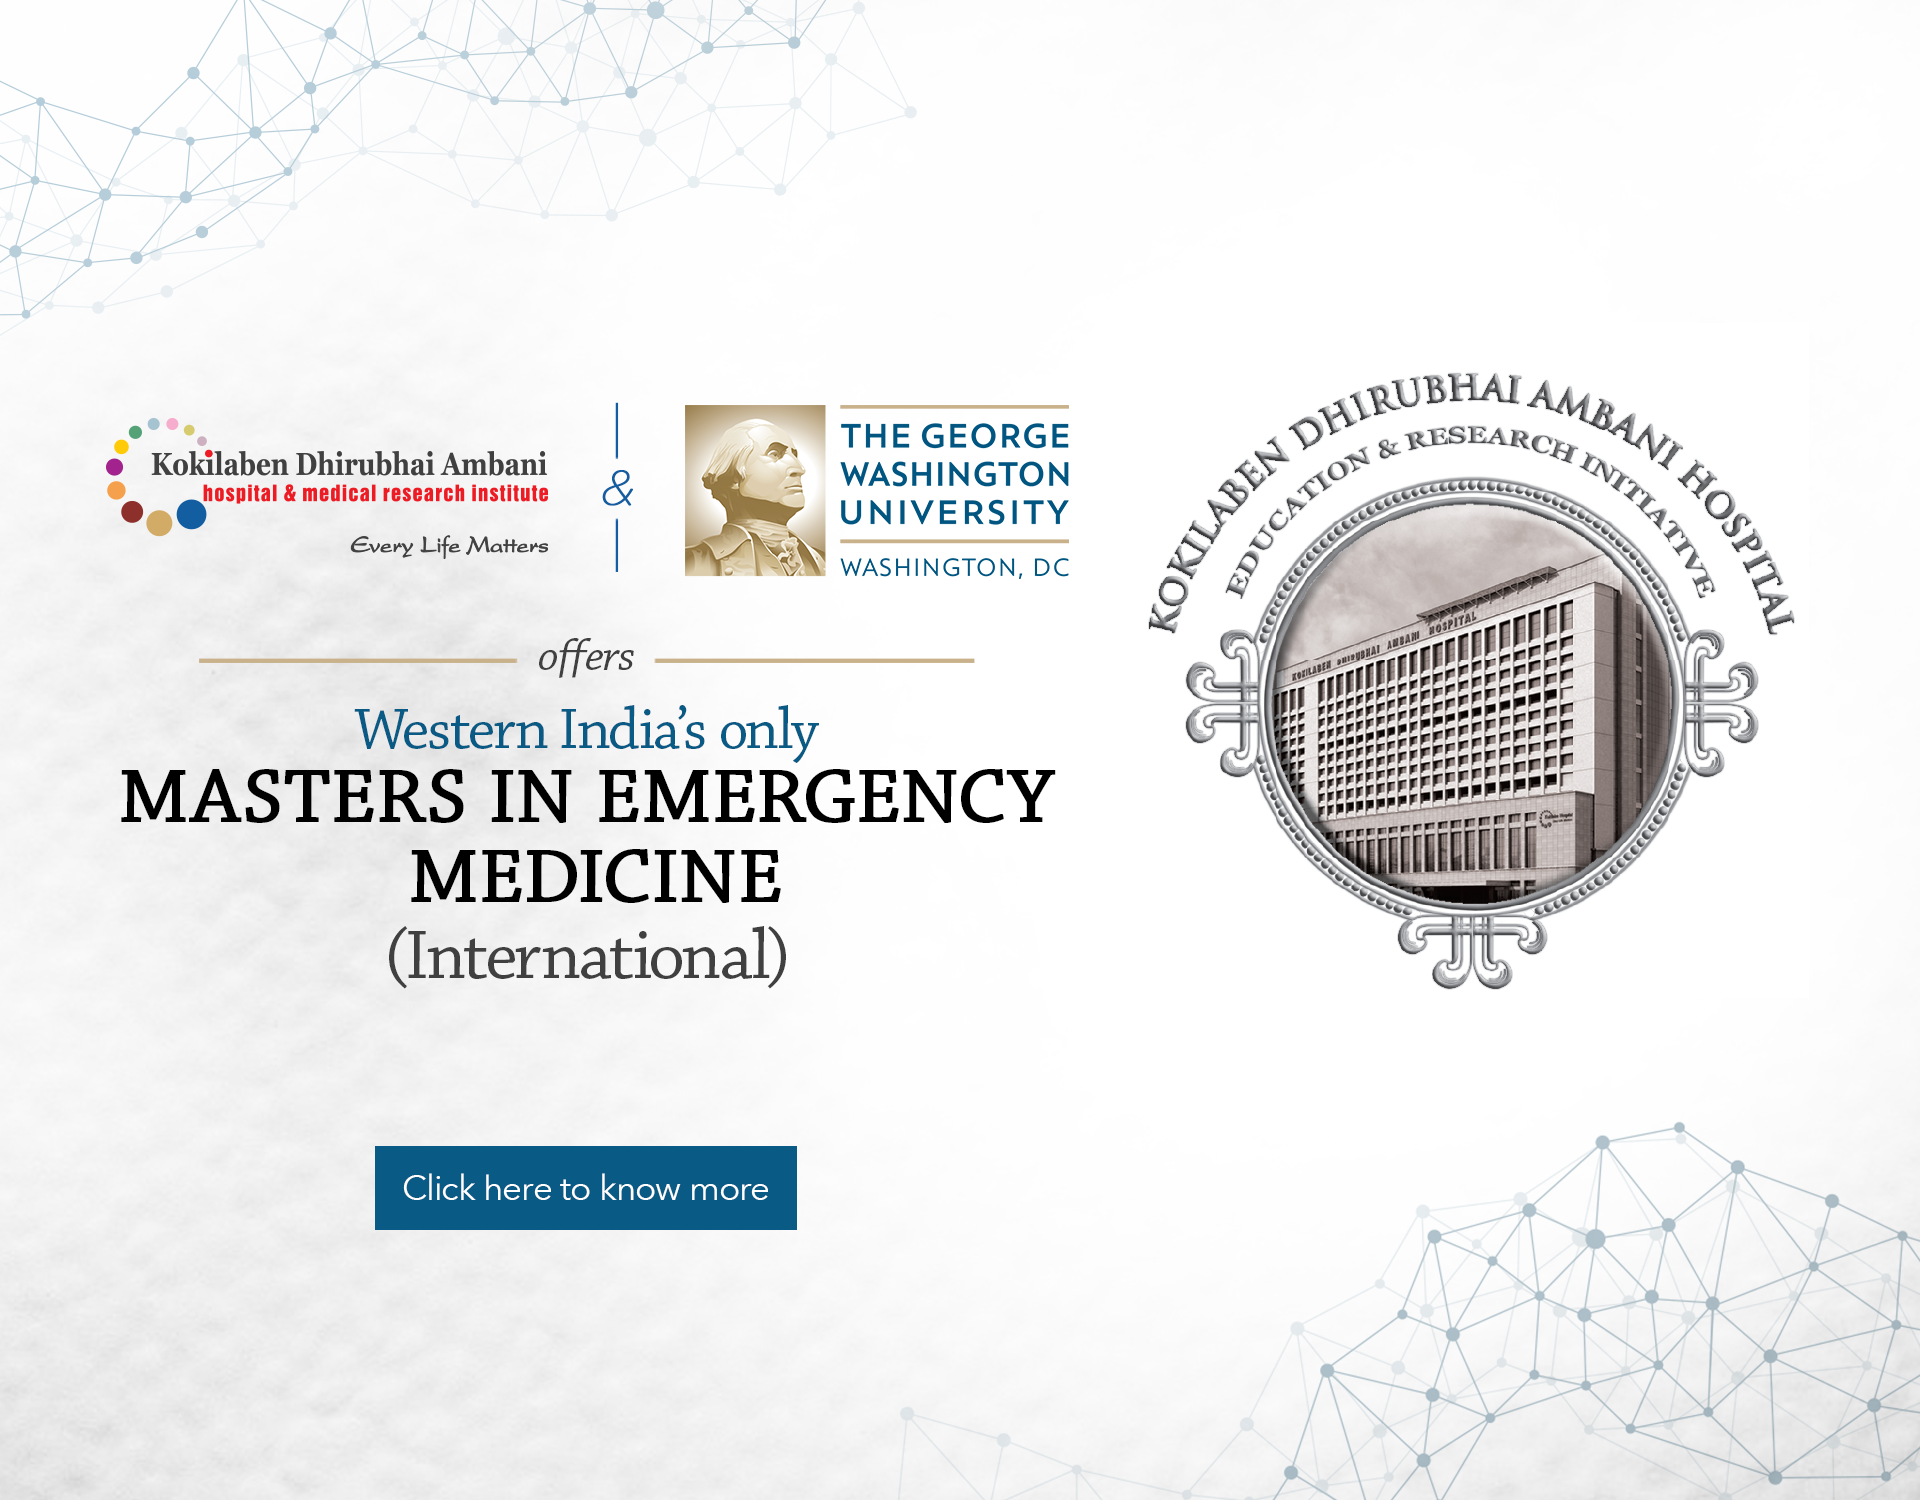 Kokilaben Dhirubhai Ambani Hospital - Masters In Emergency Medicine - International